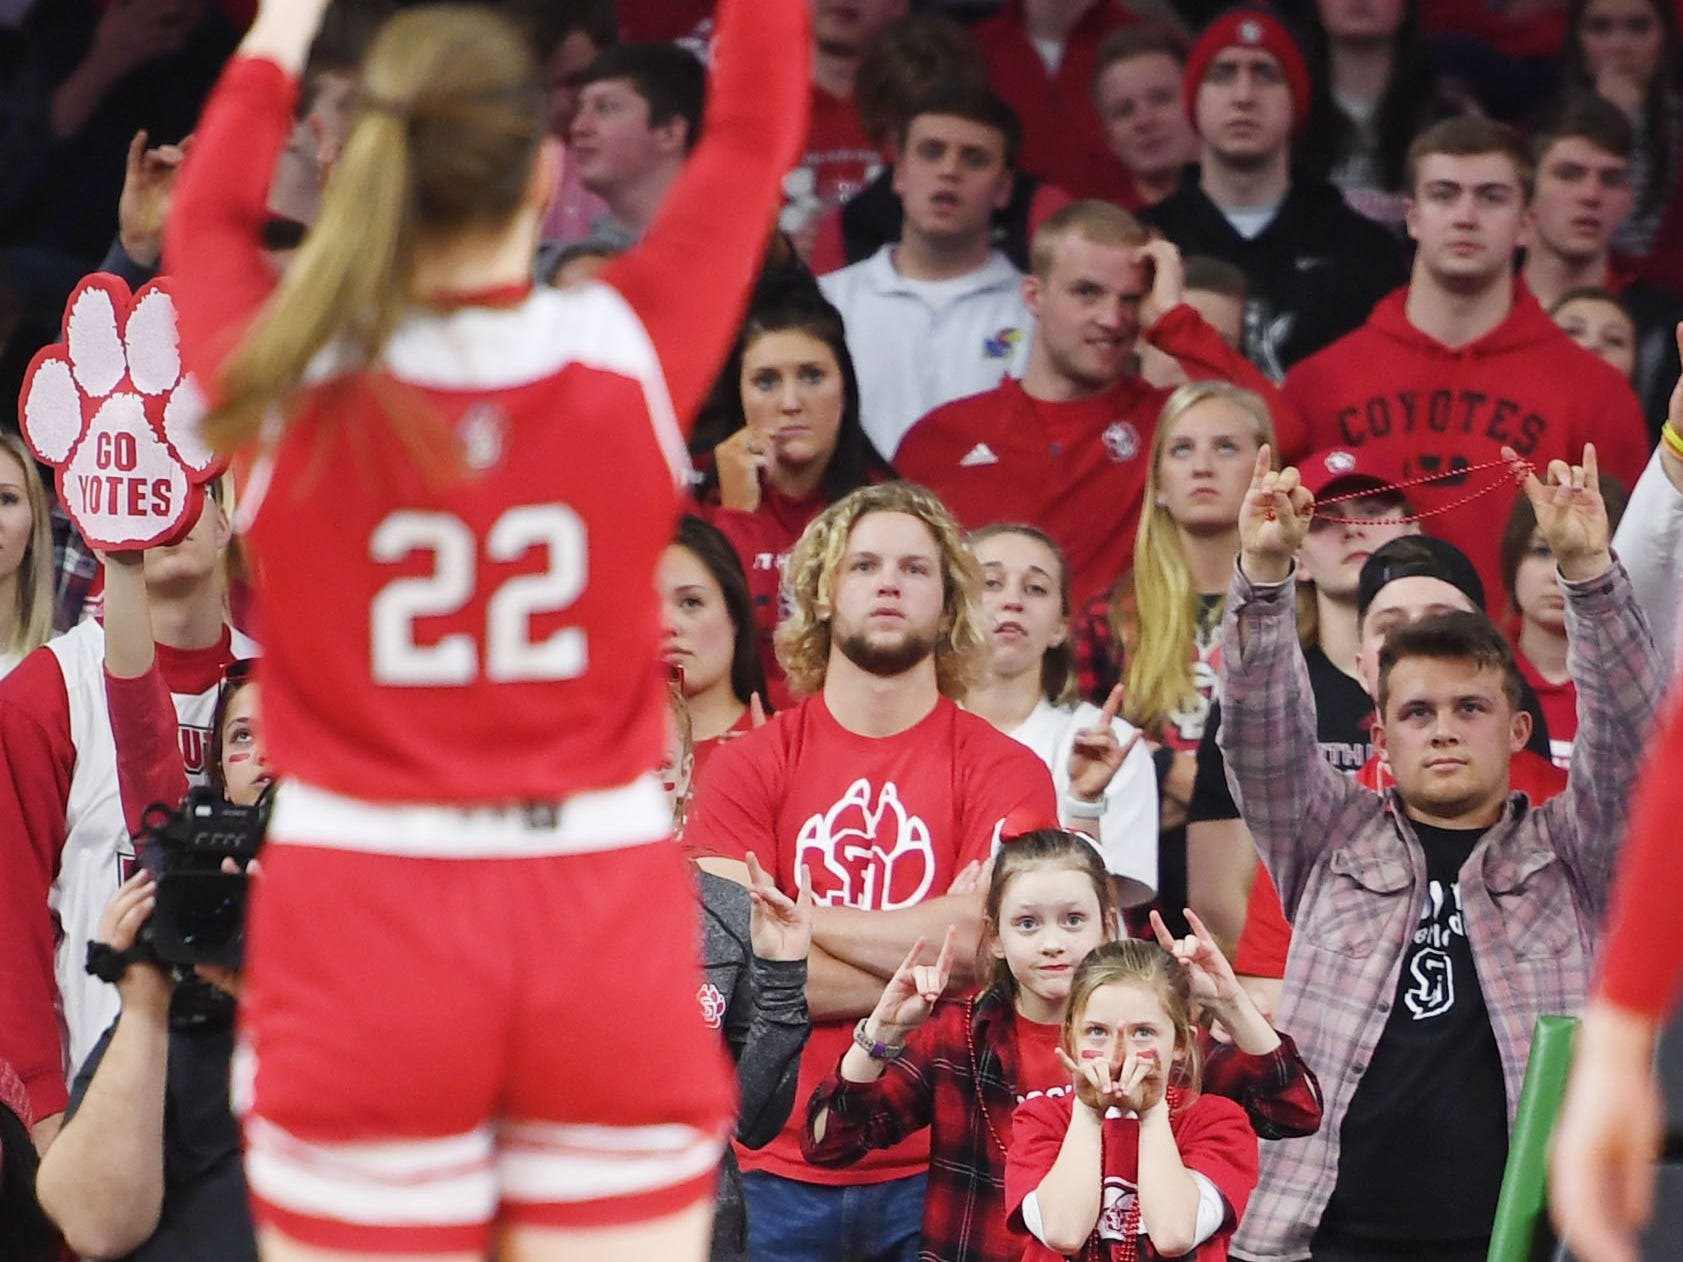 USD fans put their hands up when Chloe Lamb shoots a free throw during the game against SDSU Tuesday, March 12, in the Summit League women's championship at the Denny Sanford Premier Center in Sioux Falls.